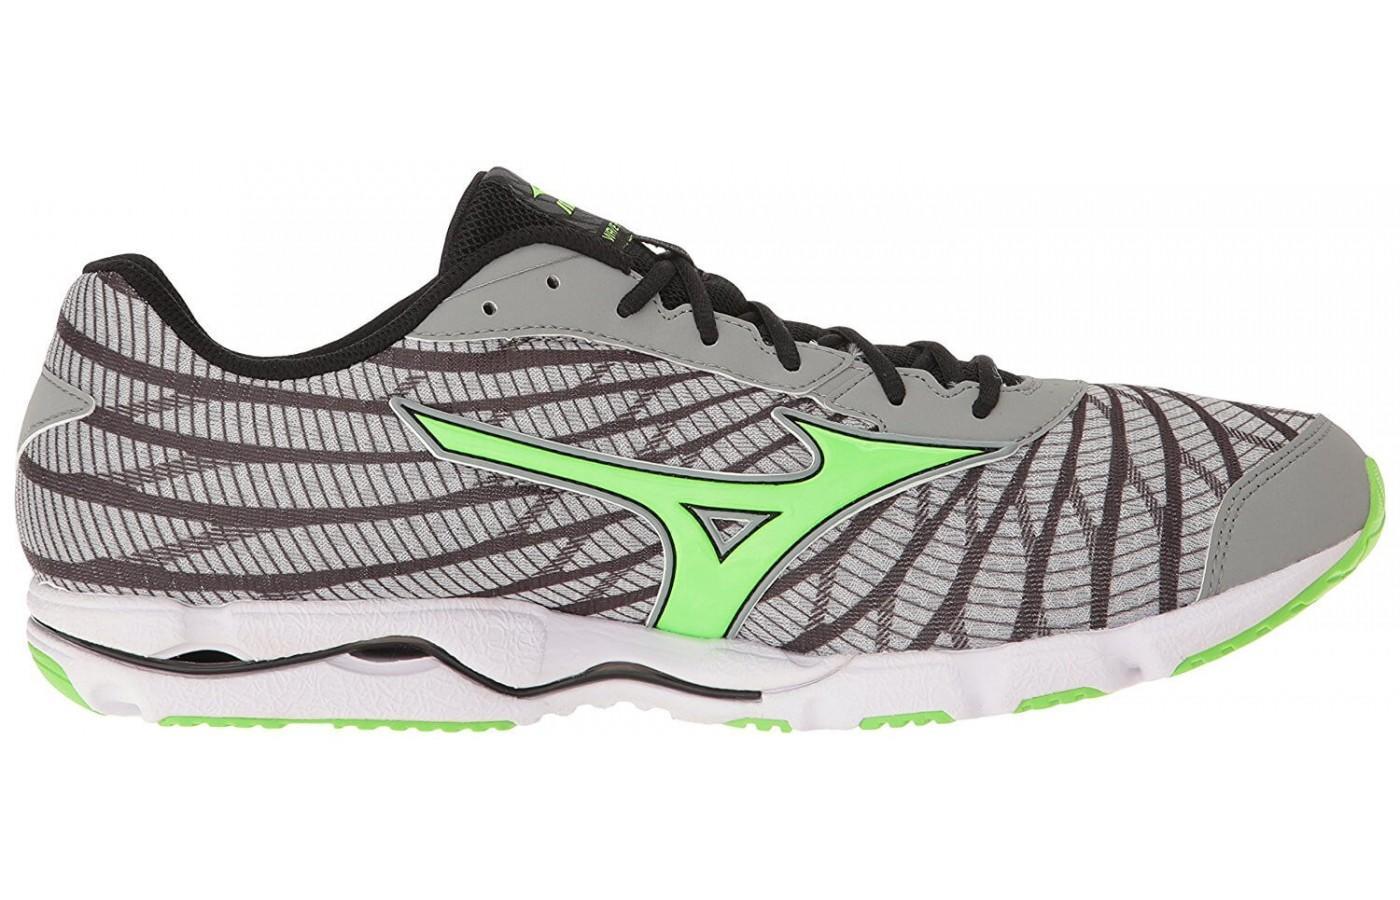 the overlays on the upper of the Mizuno Wave Hitogami 4 do not prevent air flow in the foot chamber